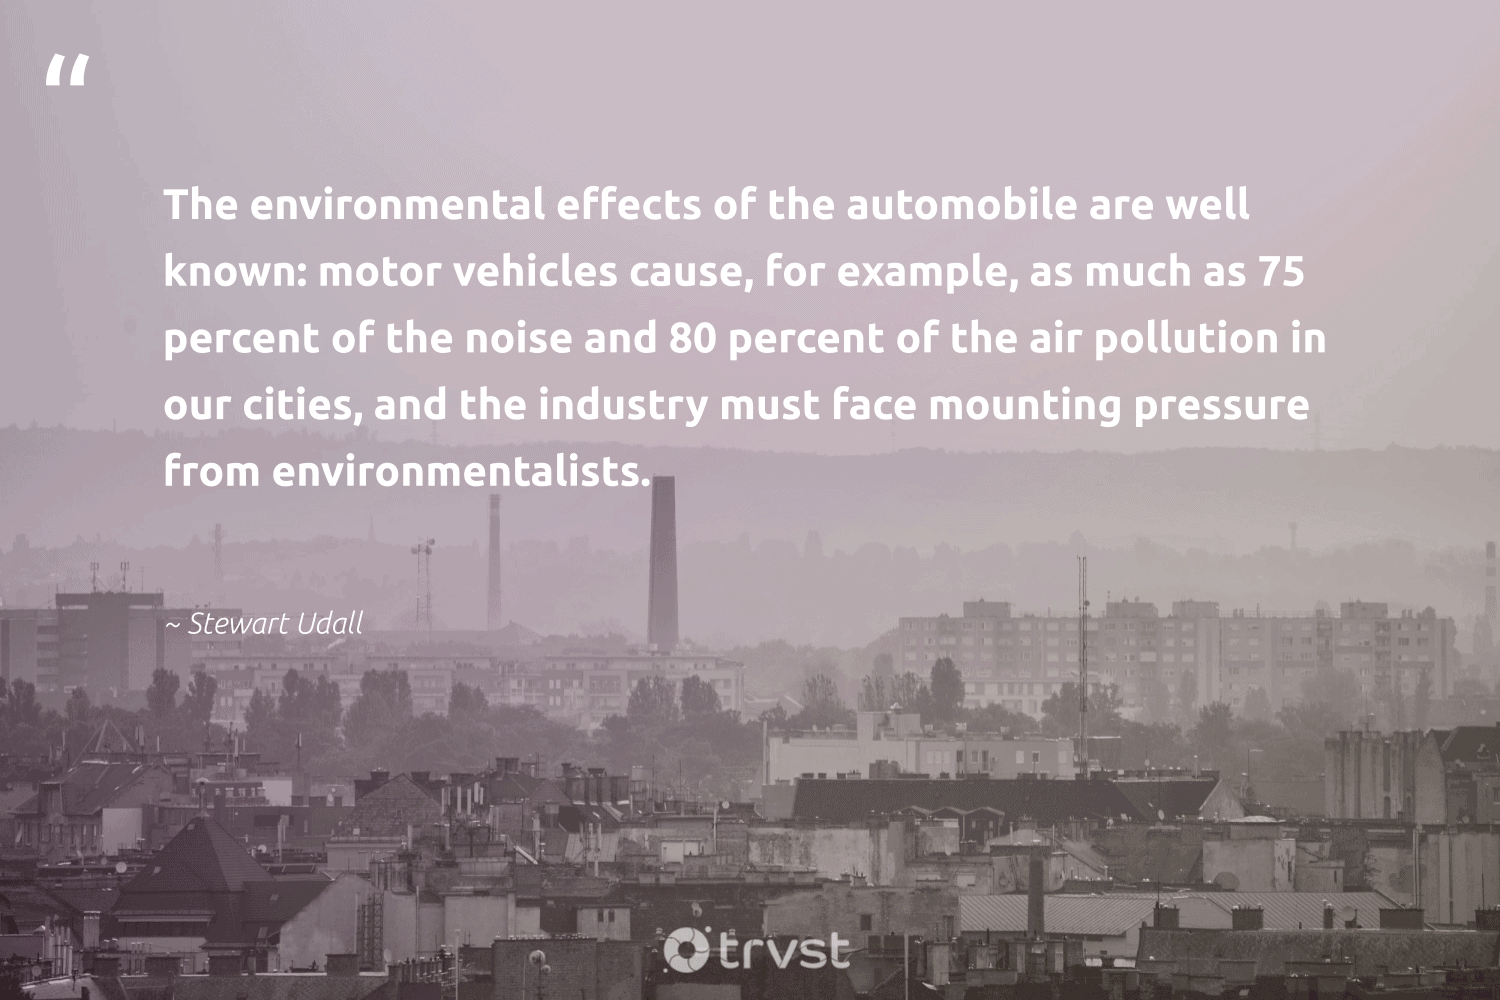 """""""The environmental effects of the automobile are well known: motor vehicles cause, for example, as much as 75 percent of the noise and 80 percent of the air pollution in our cities, and the industry must face mounting pressure from environmentalists.""""  - Stewart Udall #trvst #quotes #pollute #environmental #pollution #cause #toxic #sustainability #ecofriendly #thinkgreen #spill #naturelovers"""